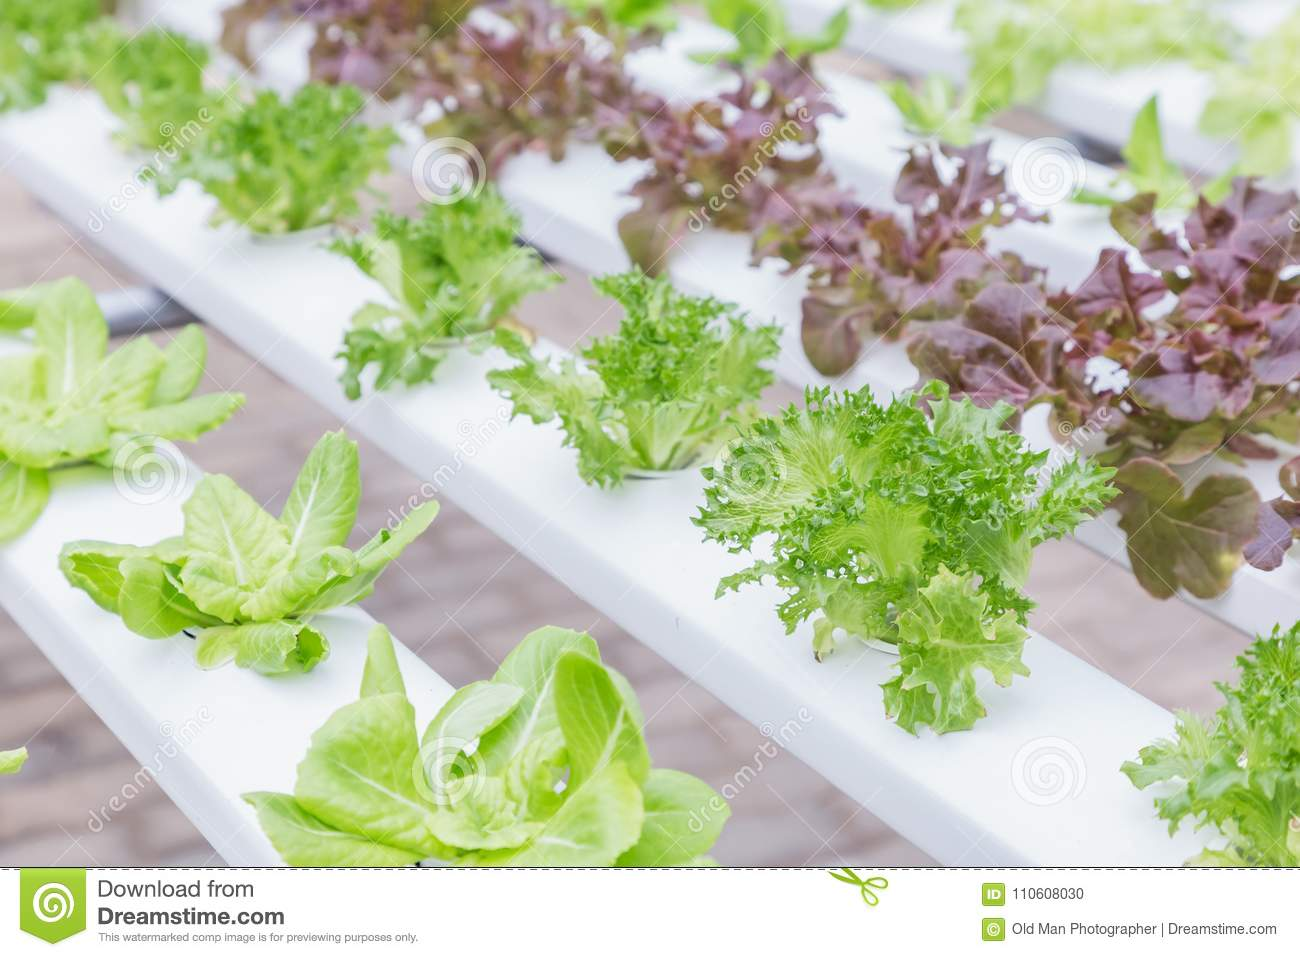 Hydroponics System Greenhouse And Organic Vegetables Salad